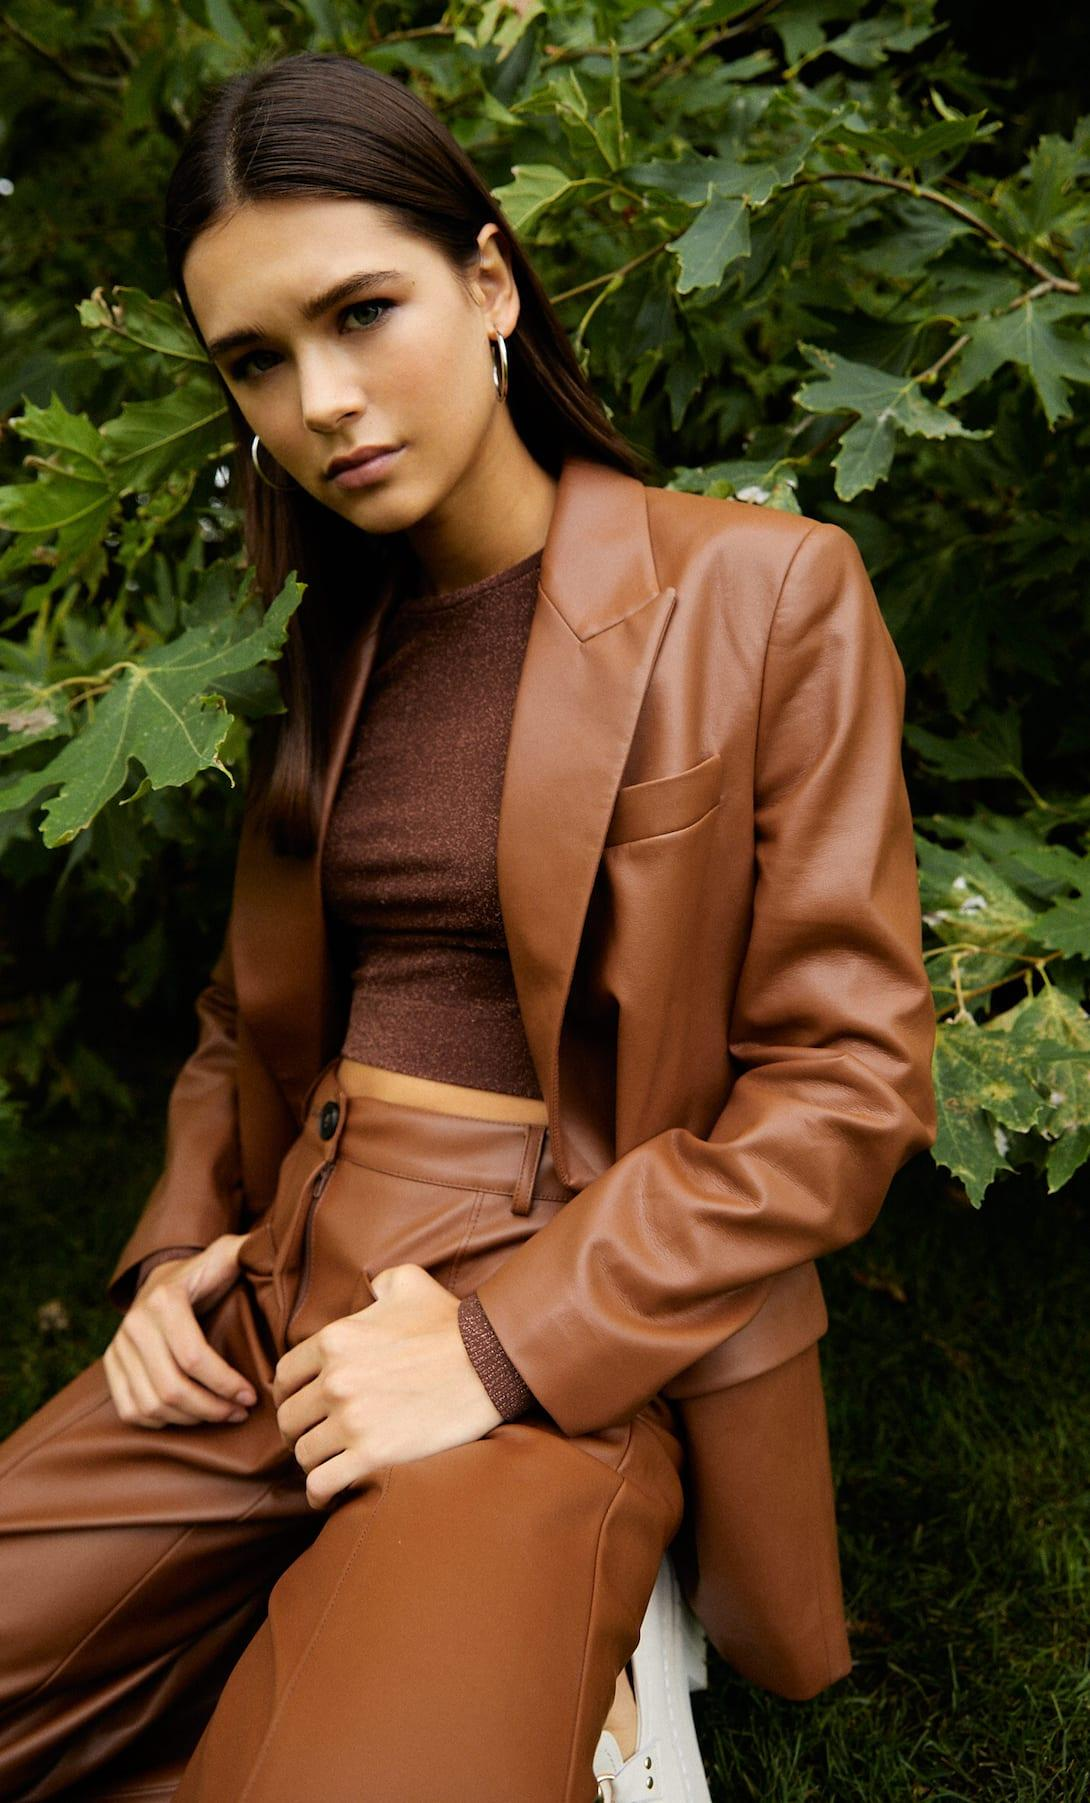 Brown Faux Leather Suit.Brown fashion is back in town. In a big way. Autumnal, retro, animal, corduroy. Yup, it's brown's time to shine this season. If you want some inspiration for how to wear brown and what colours go with brown, then it's all here. We have lots of wearable looks that you can recreate really easily with the clothes you already have or with a few wardrobe updates. | www.kittyandb.com #Brown #Brownaesthetic #FauxLeather #Suit